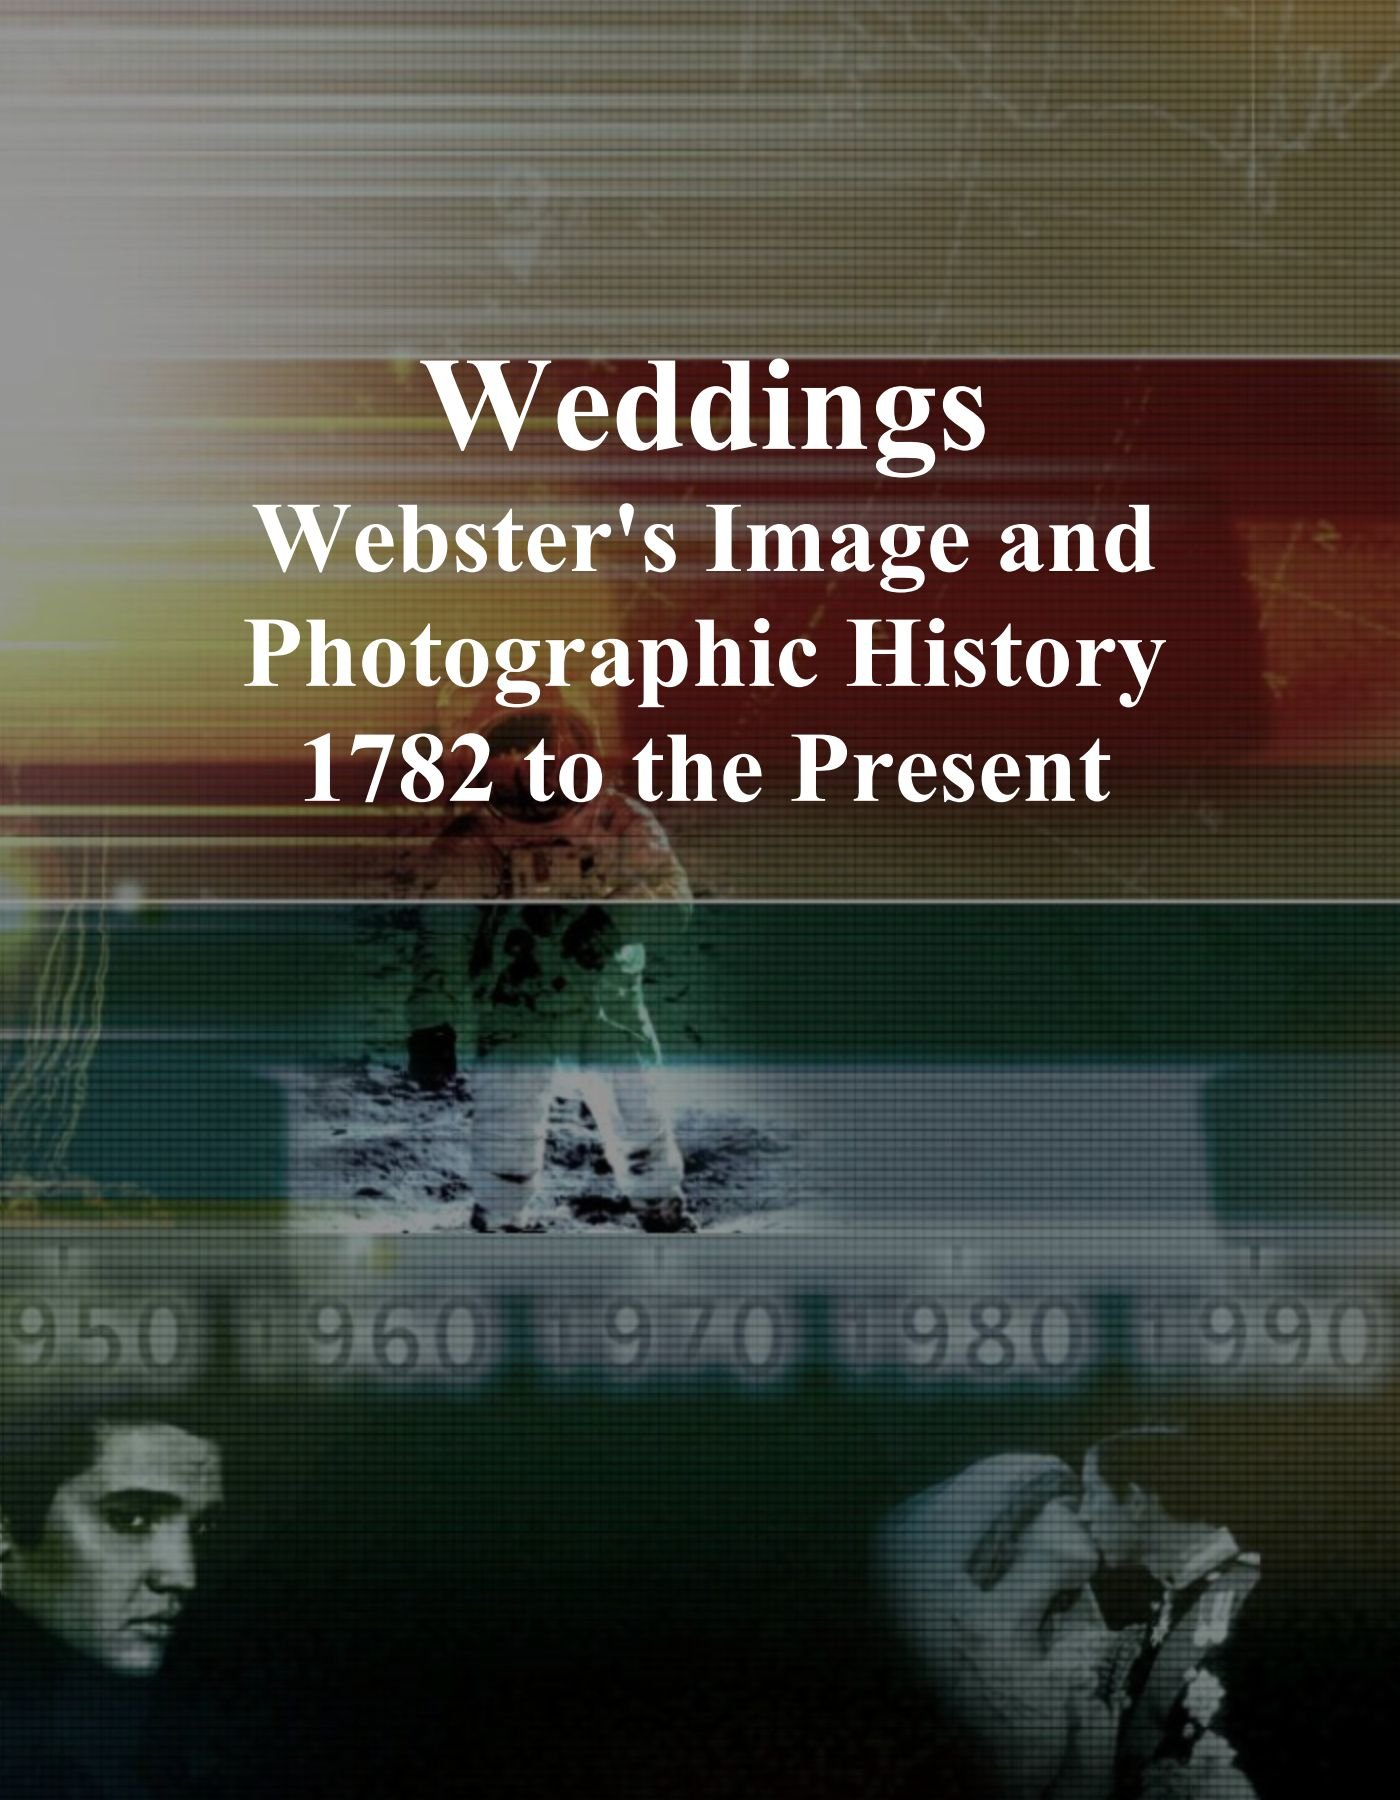 Weddings: Webster's Image and Photographic History, 1782 to the Present